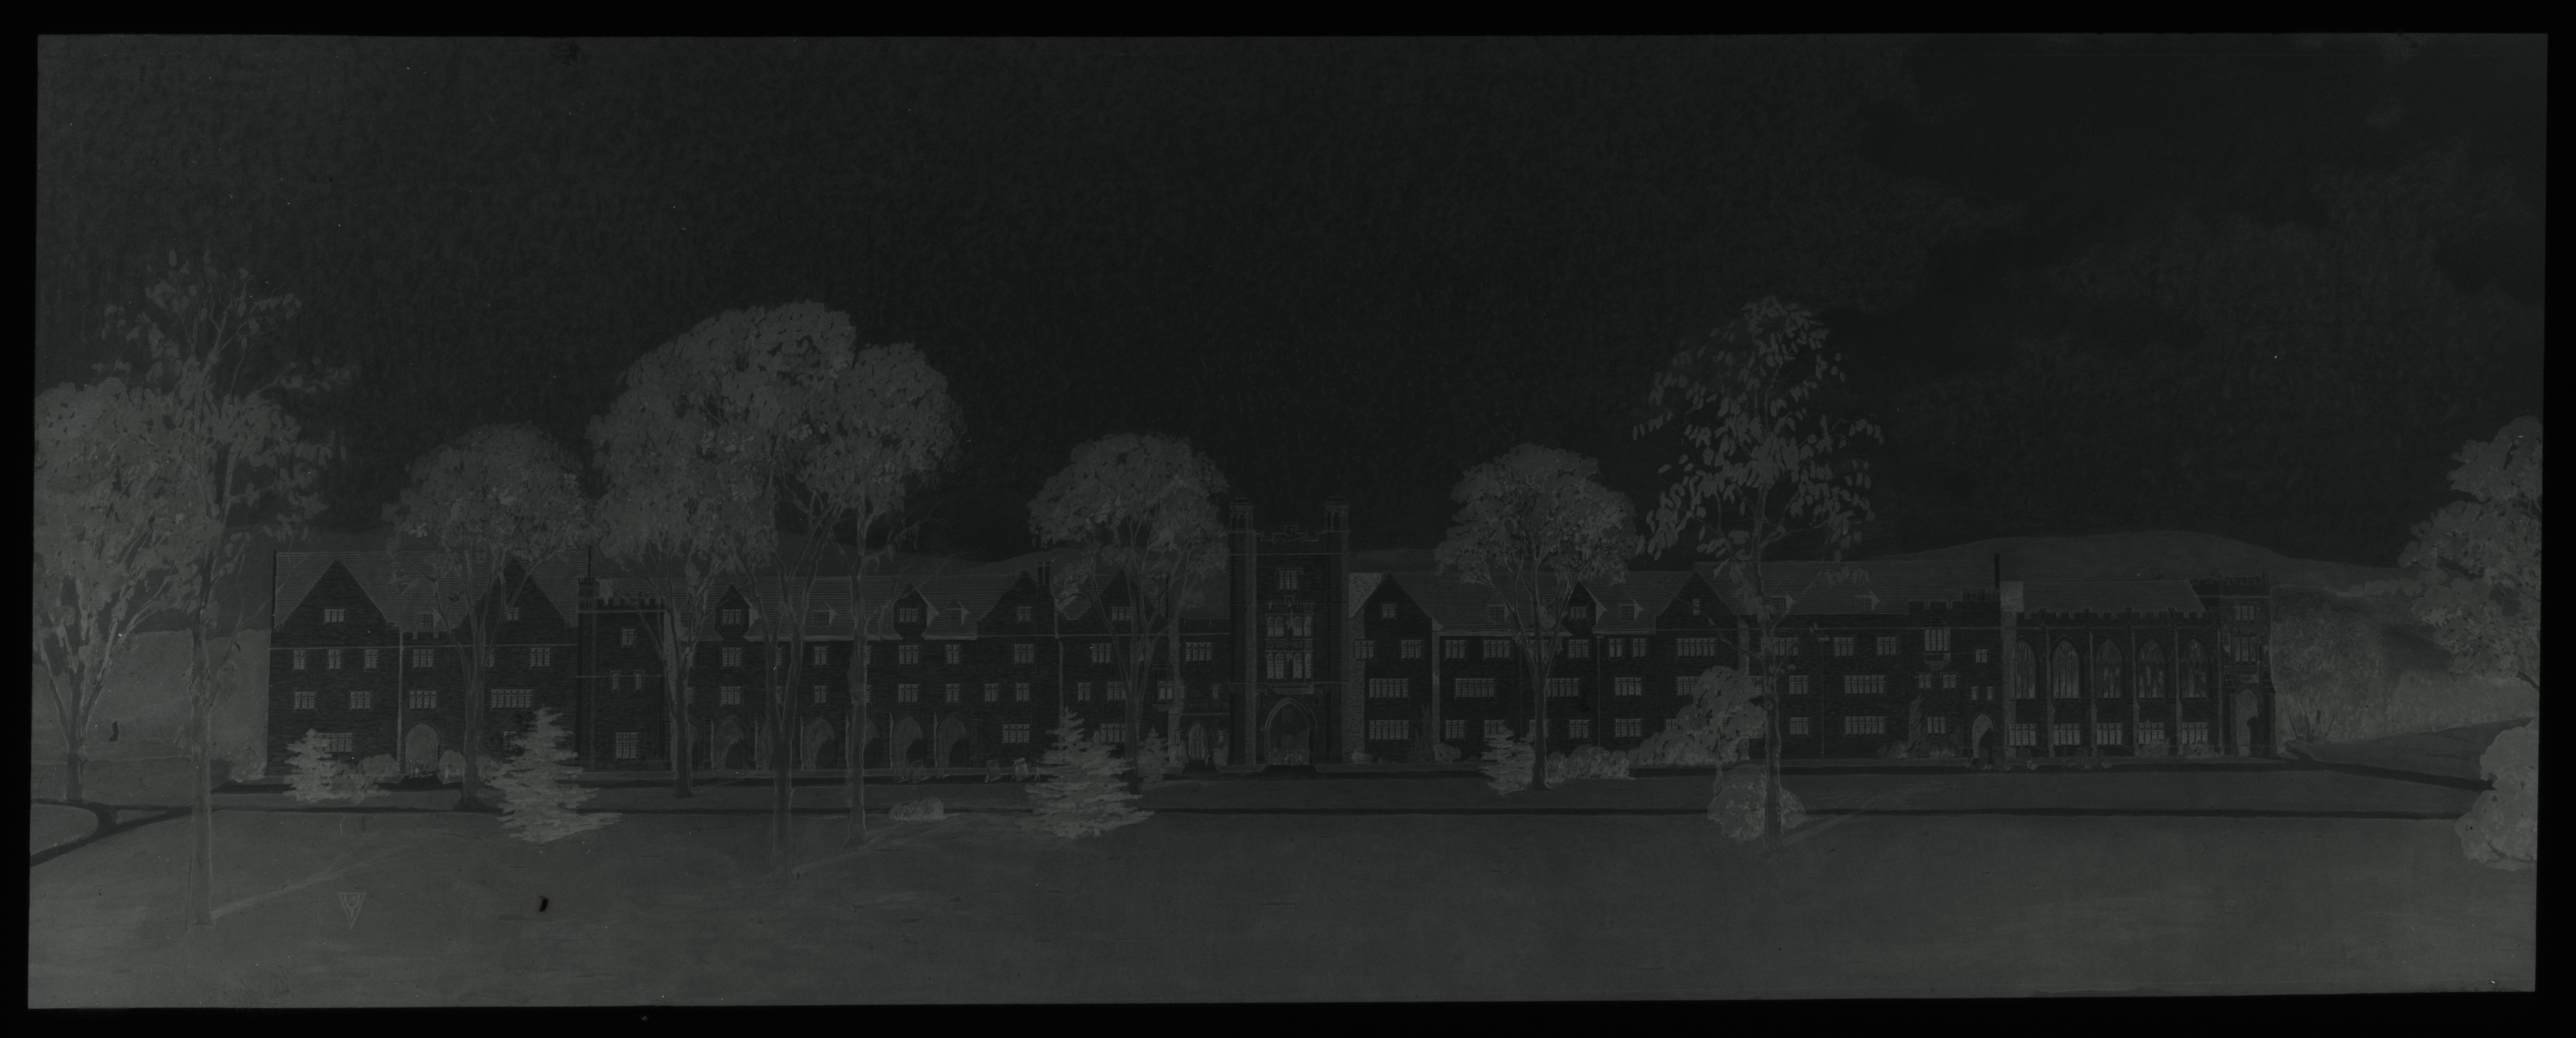 Glass plate negative of a drawing of a proposed dormitory building in the Upper Quad. The design of the current Upper Quad construction is based on these original designs.